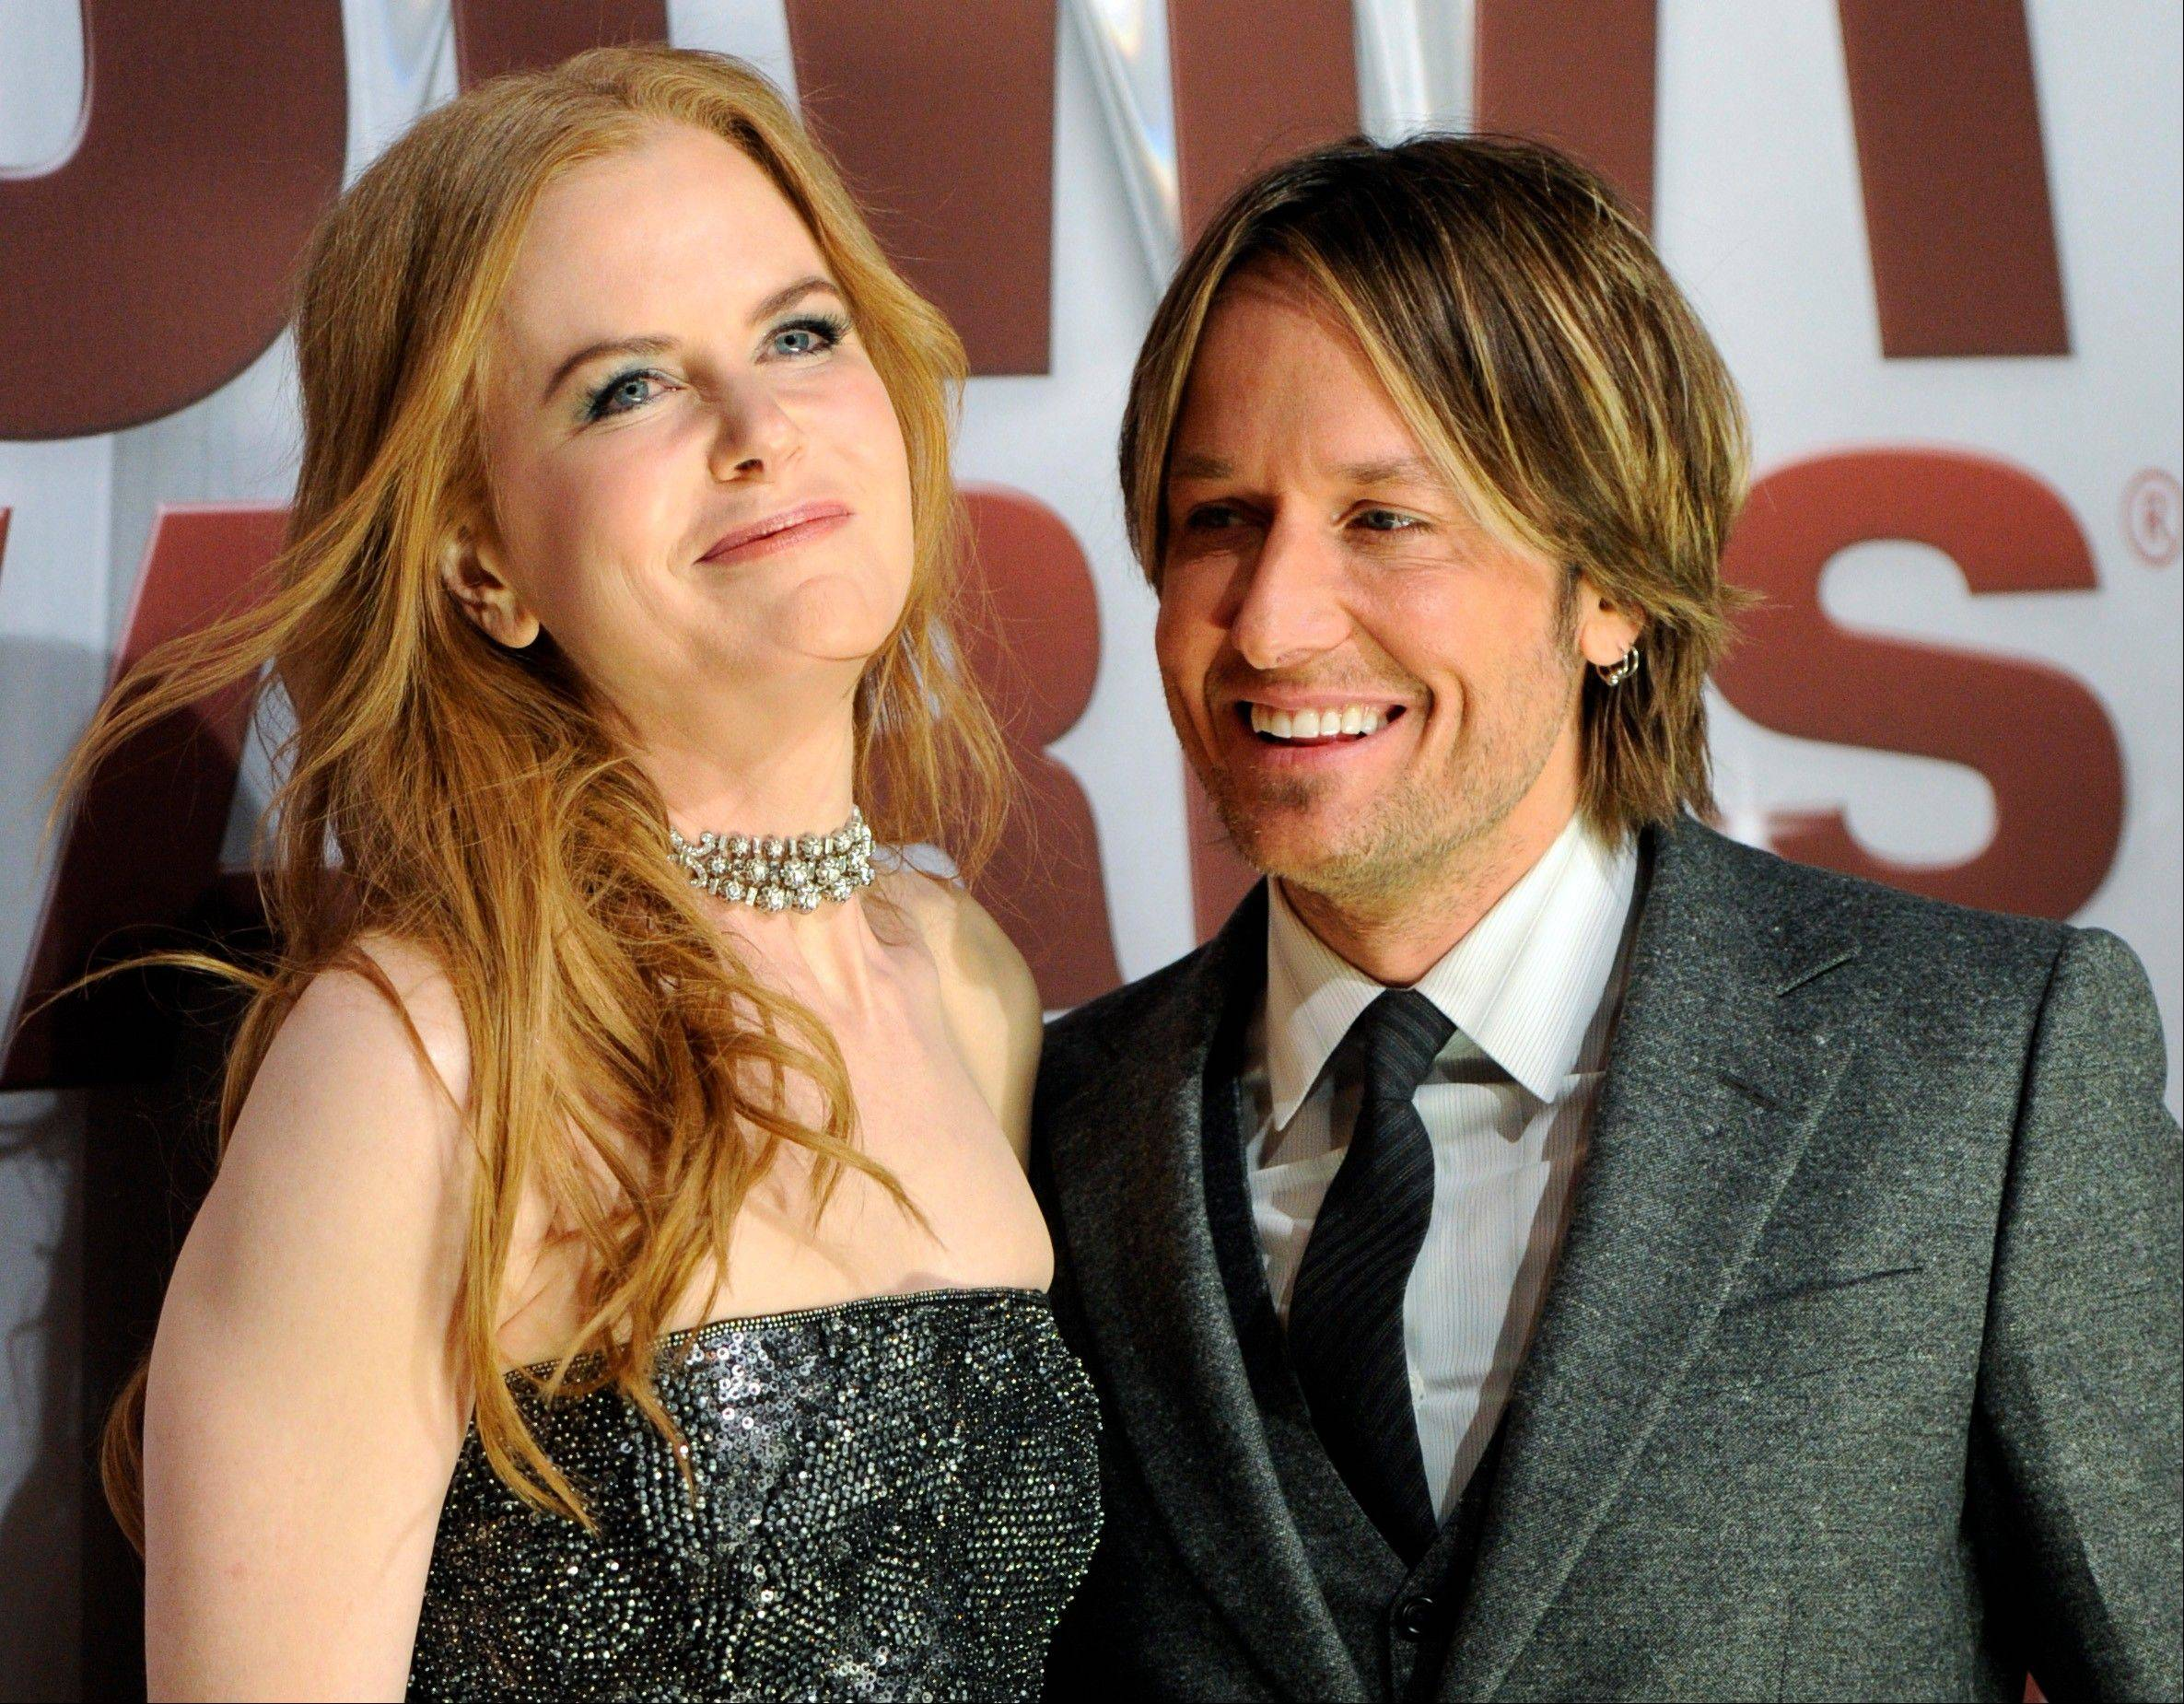 Nicole Kidman and Keith Urban arrive at the 45th Annual CMA Awards in Nashville. (AP Photo/Evan Agostini)